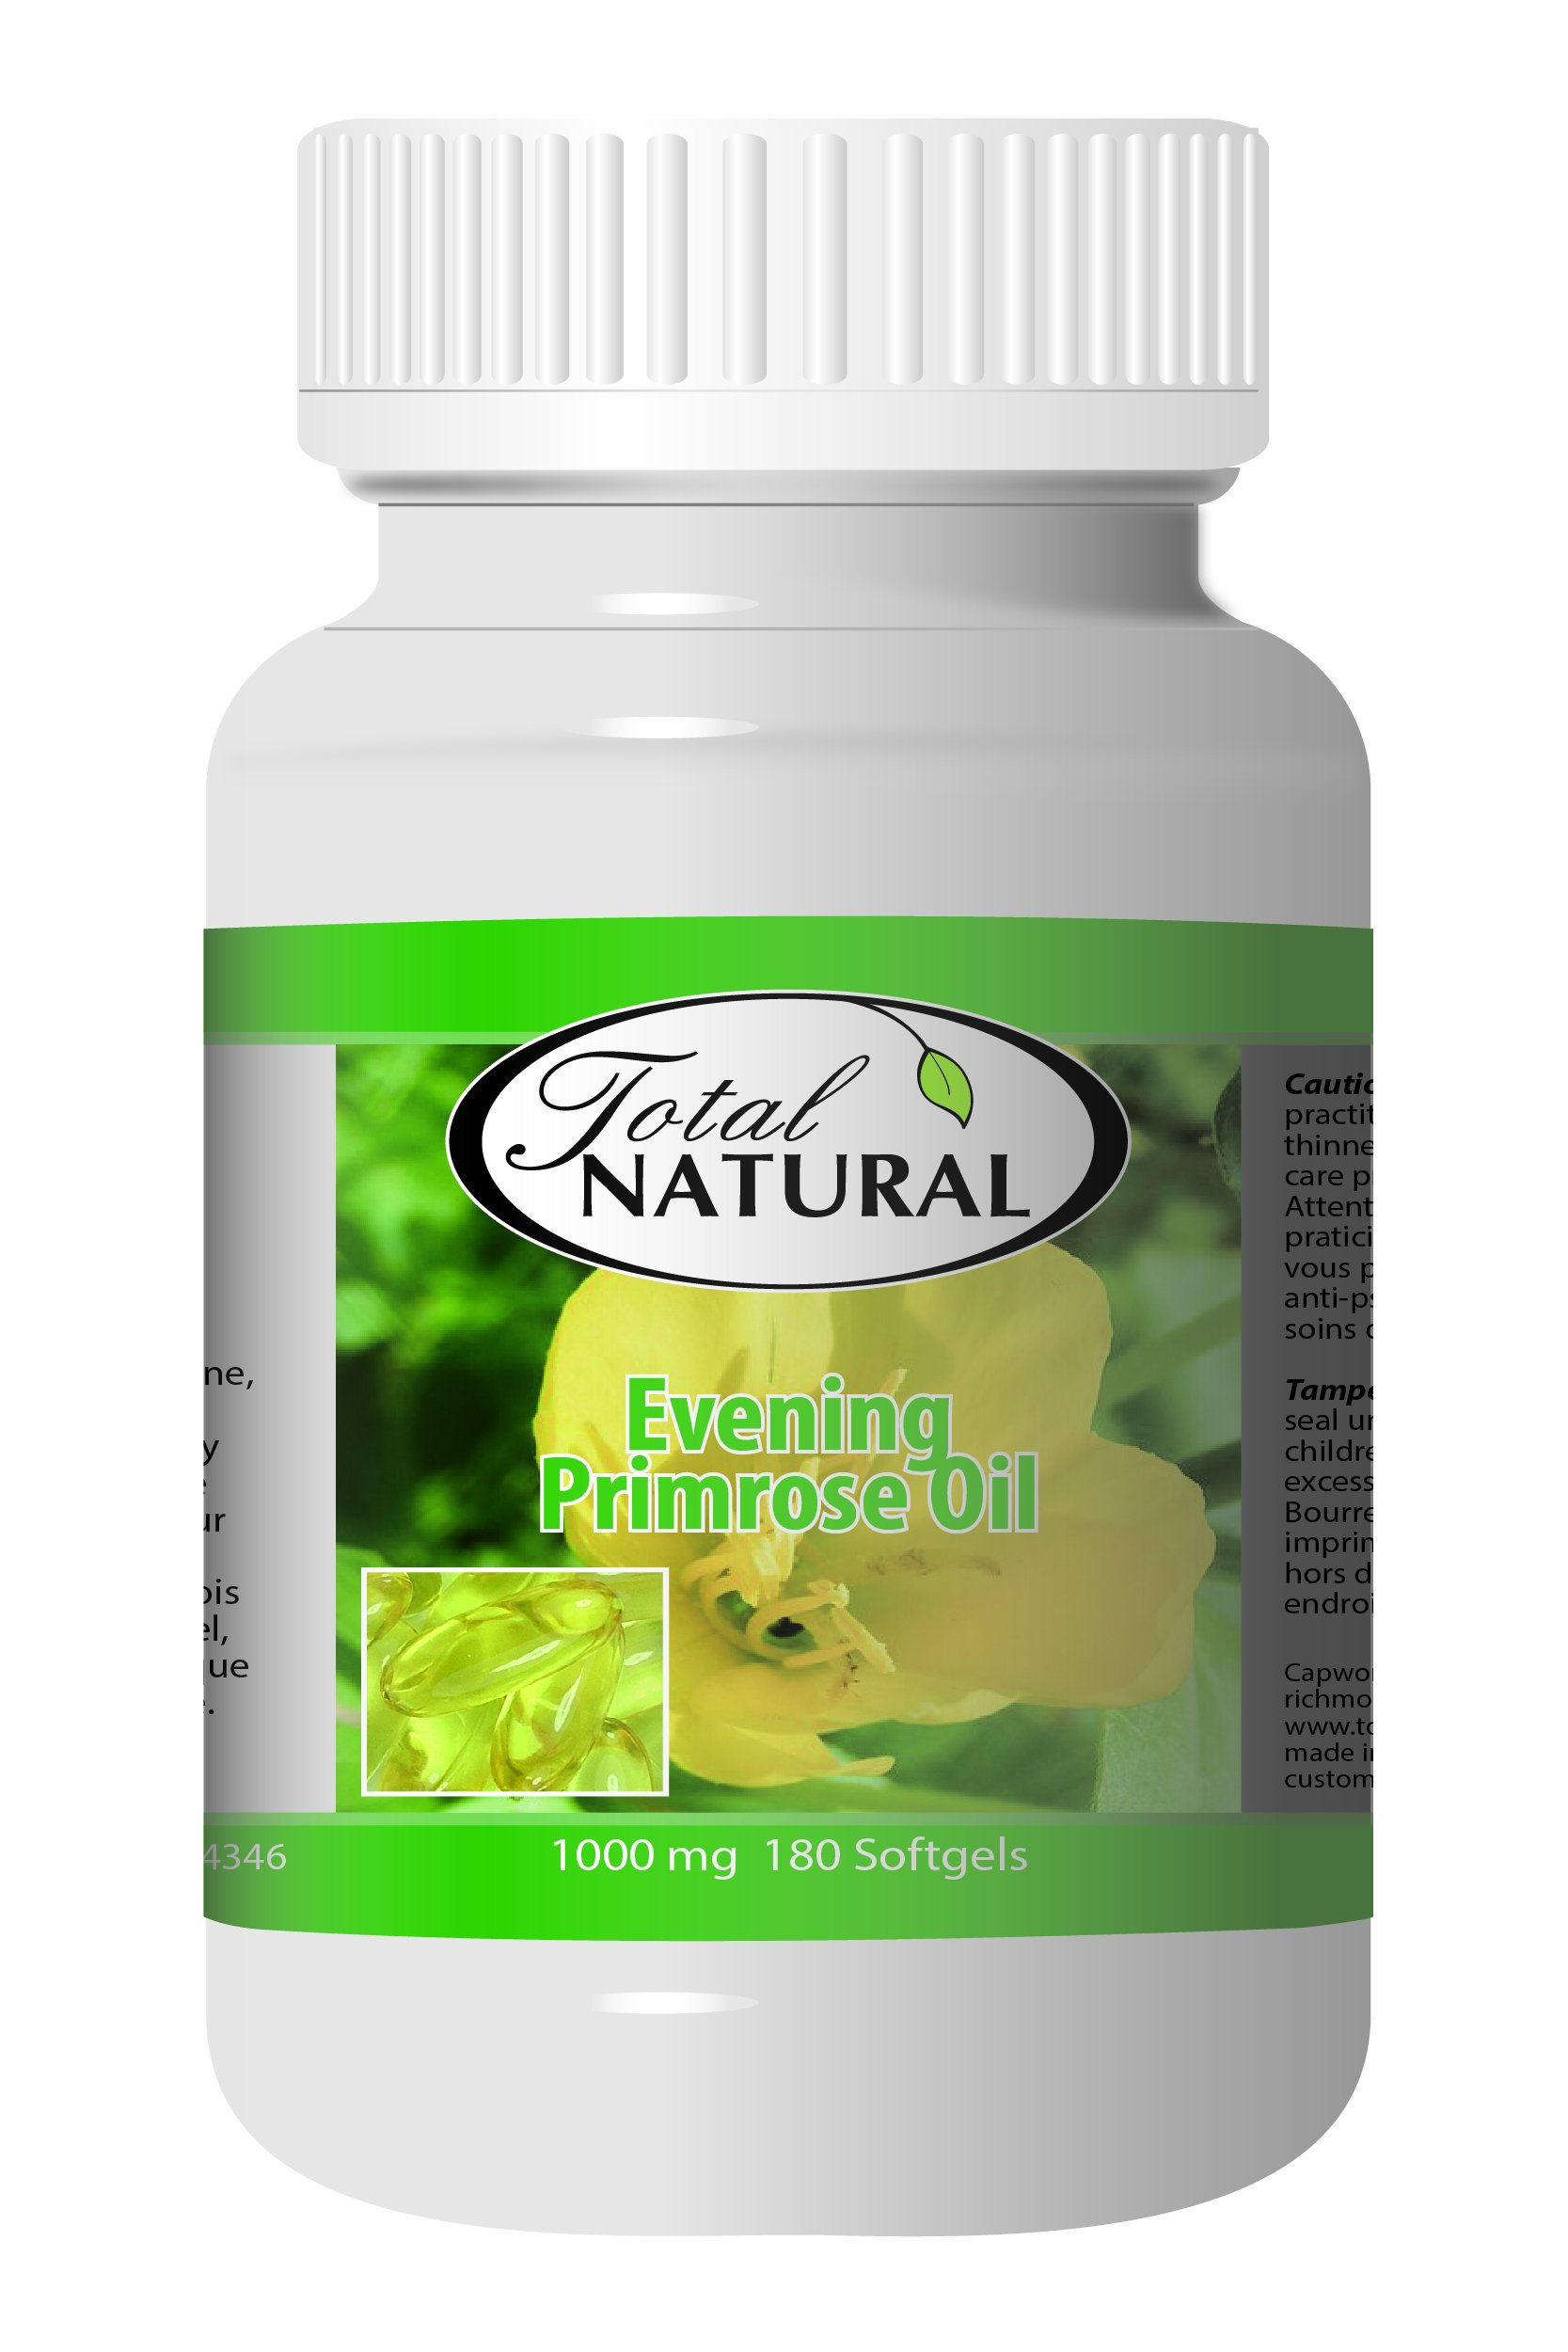 Evening Primrose Oil 1000mg 150 Softgels [5 Bottles] by Total Natural, Improve Metabolism, PMS Support and Fertility, Support Heart Health and Skin Health